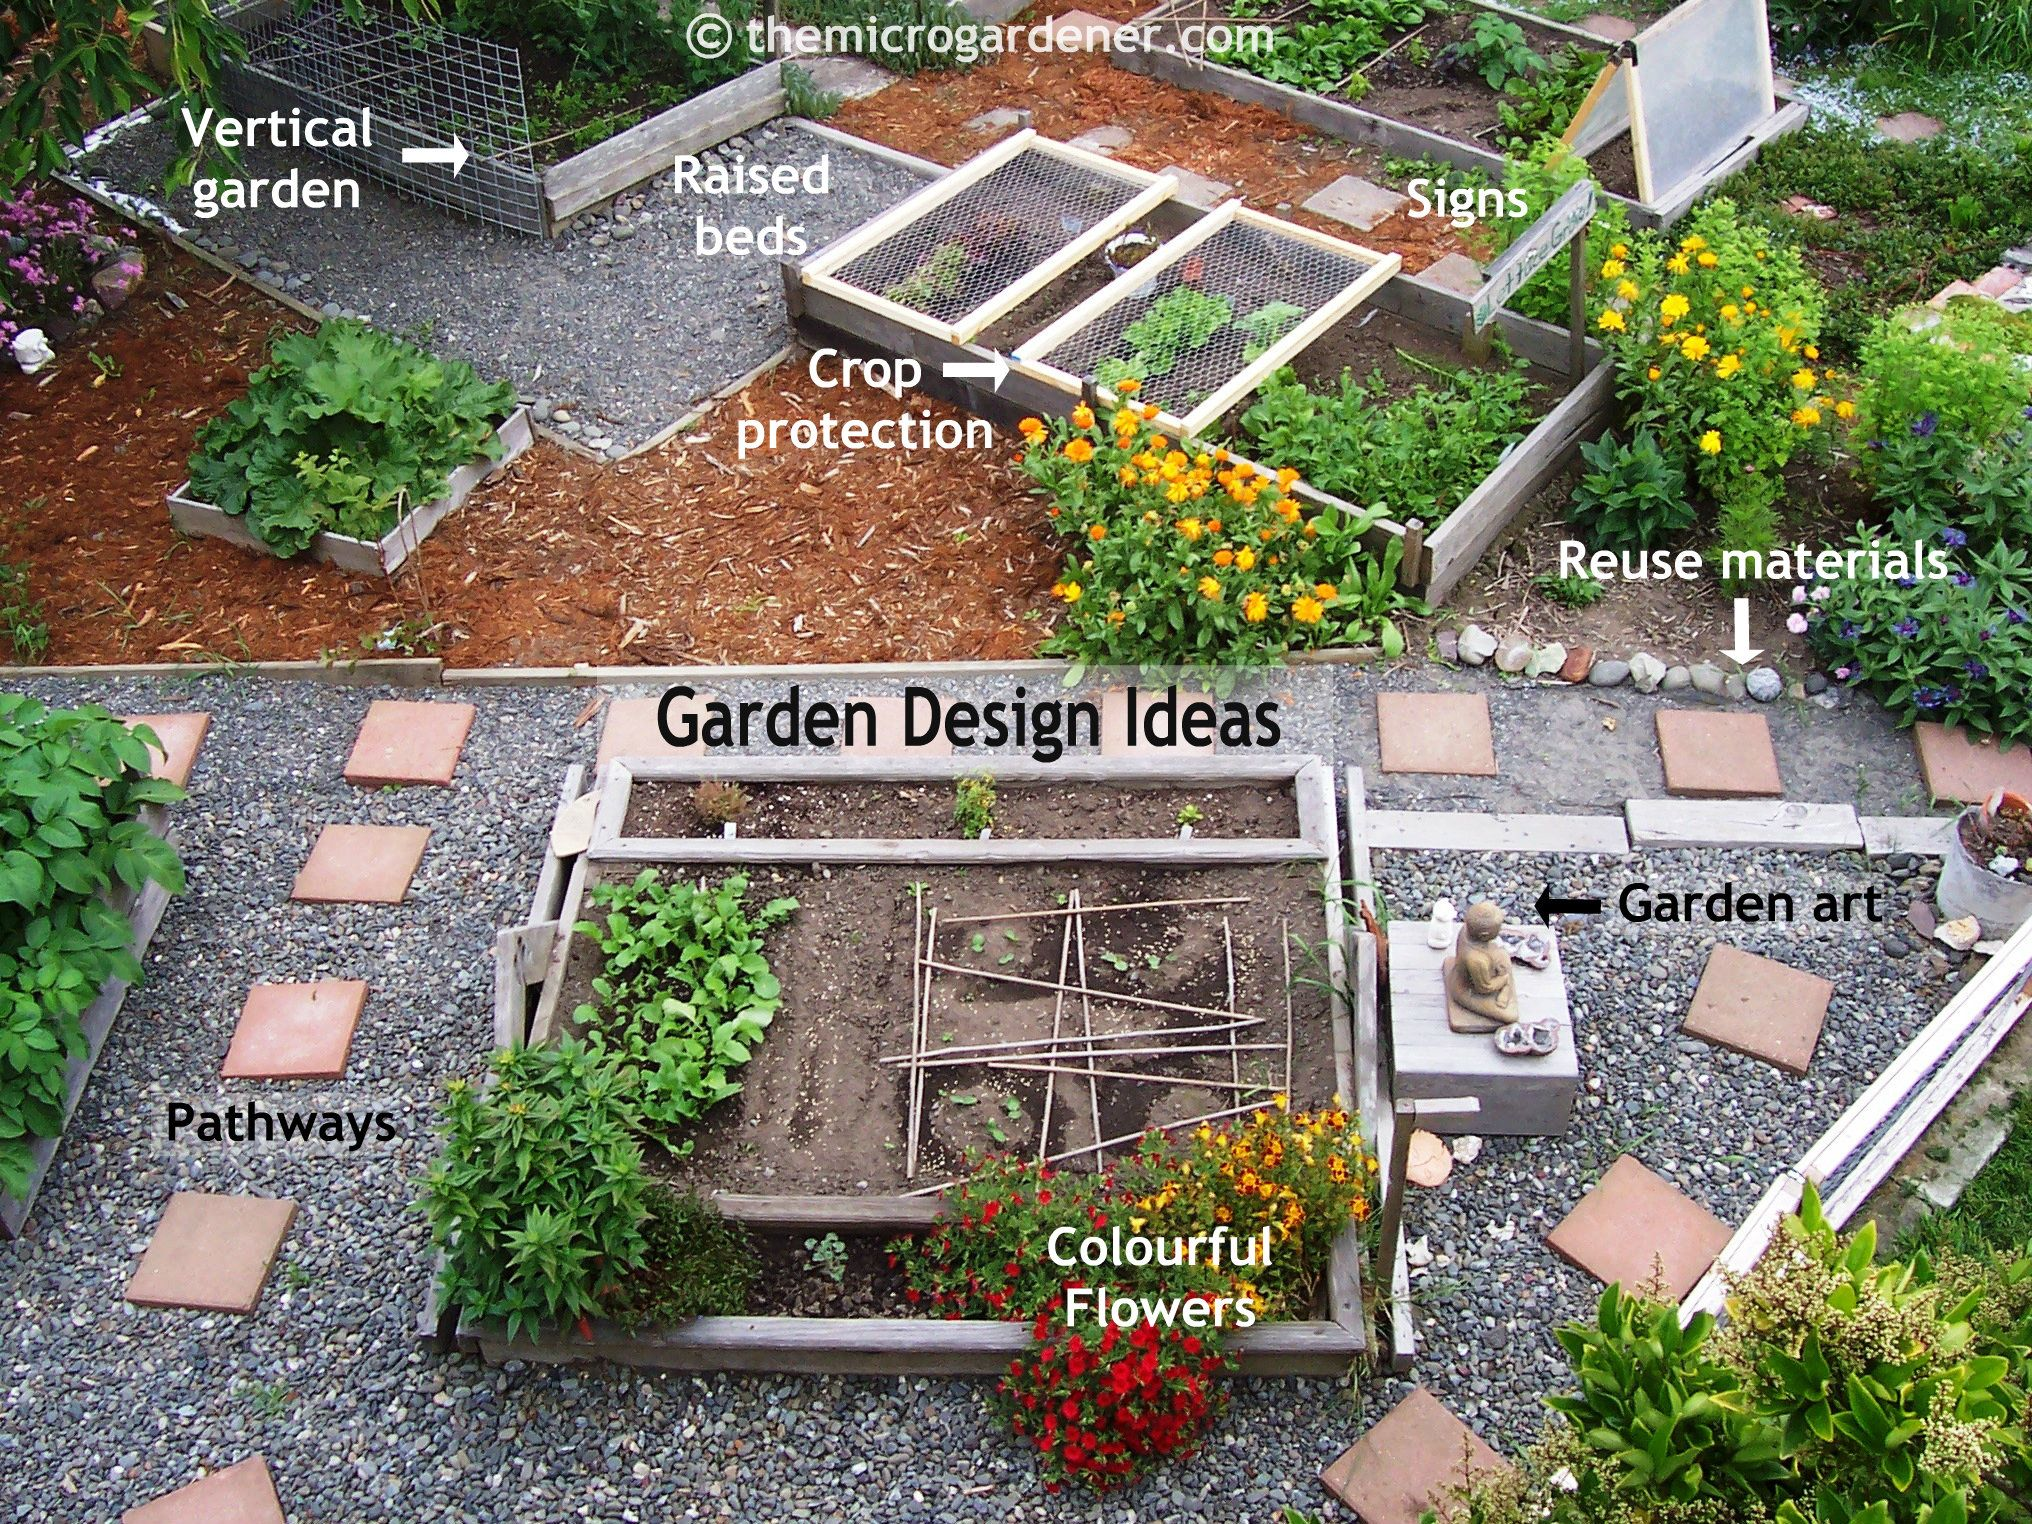 Small Gardens Ideas water feature surrounded by plantings Small Garden Design Got Limited Space Or Planning A Kitchen Garden If You Want